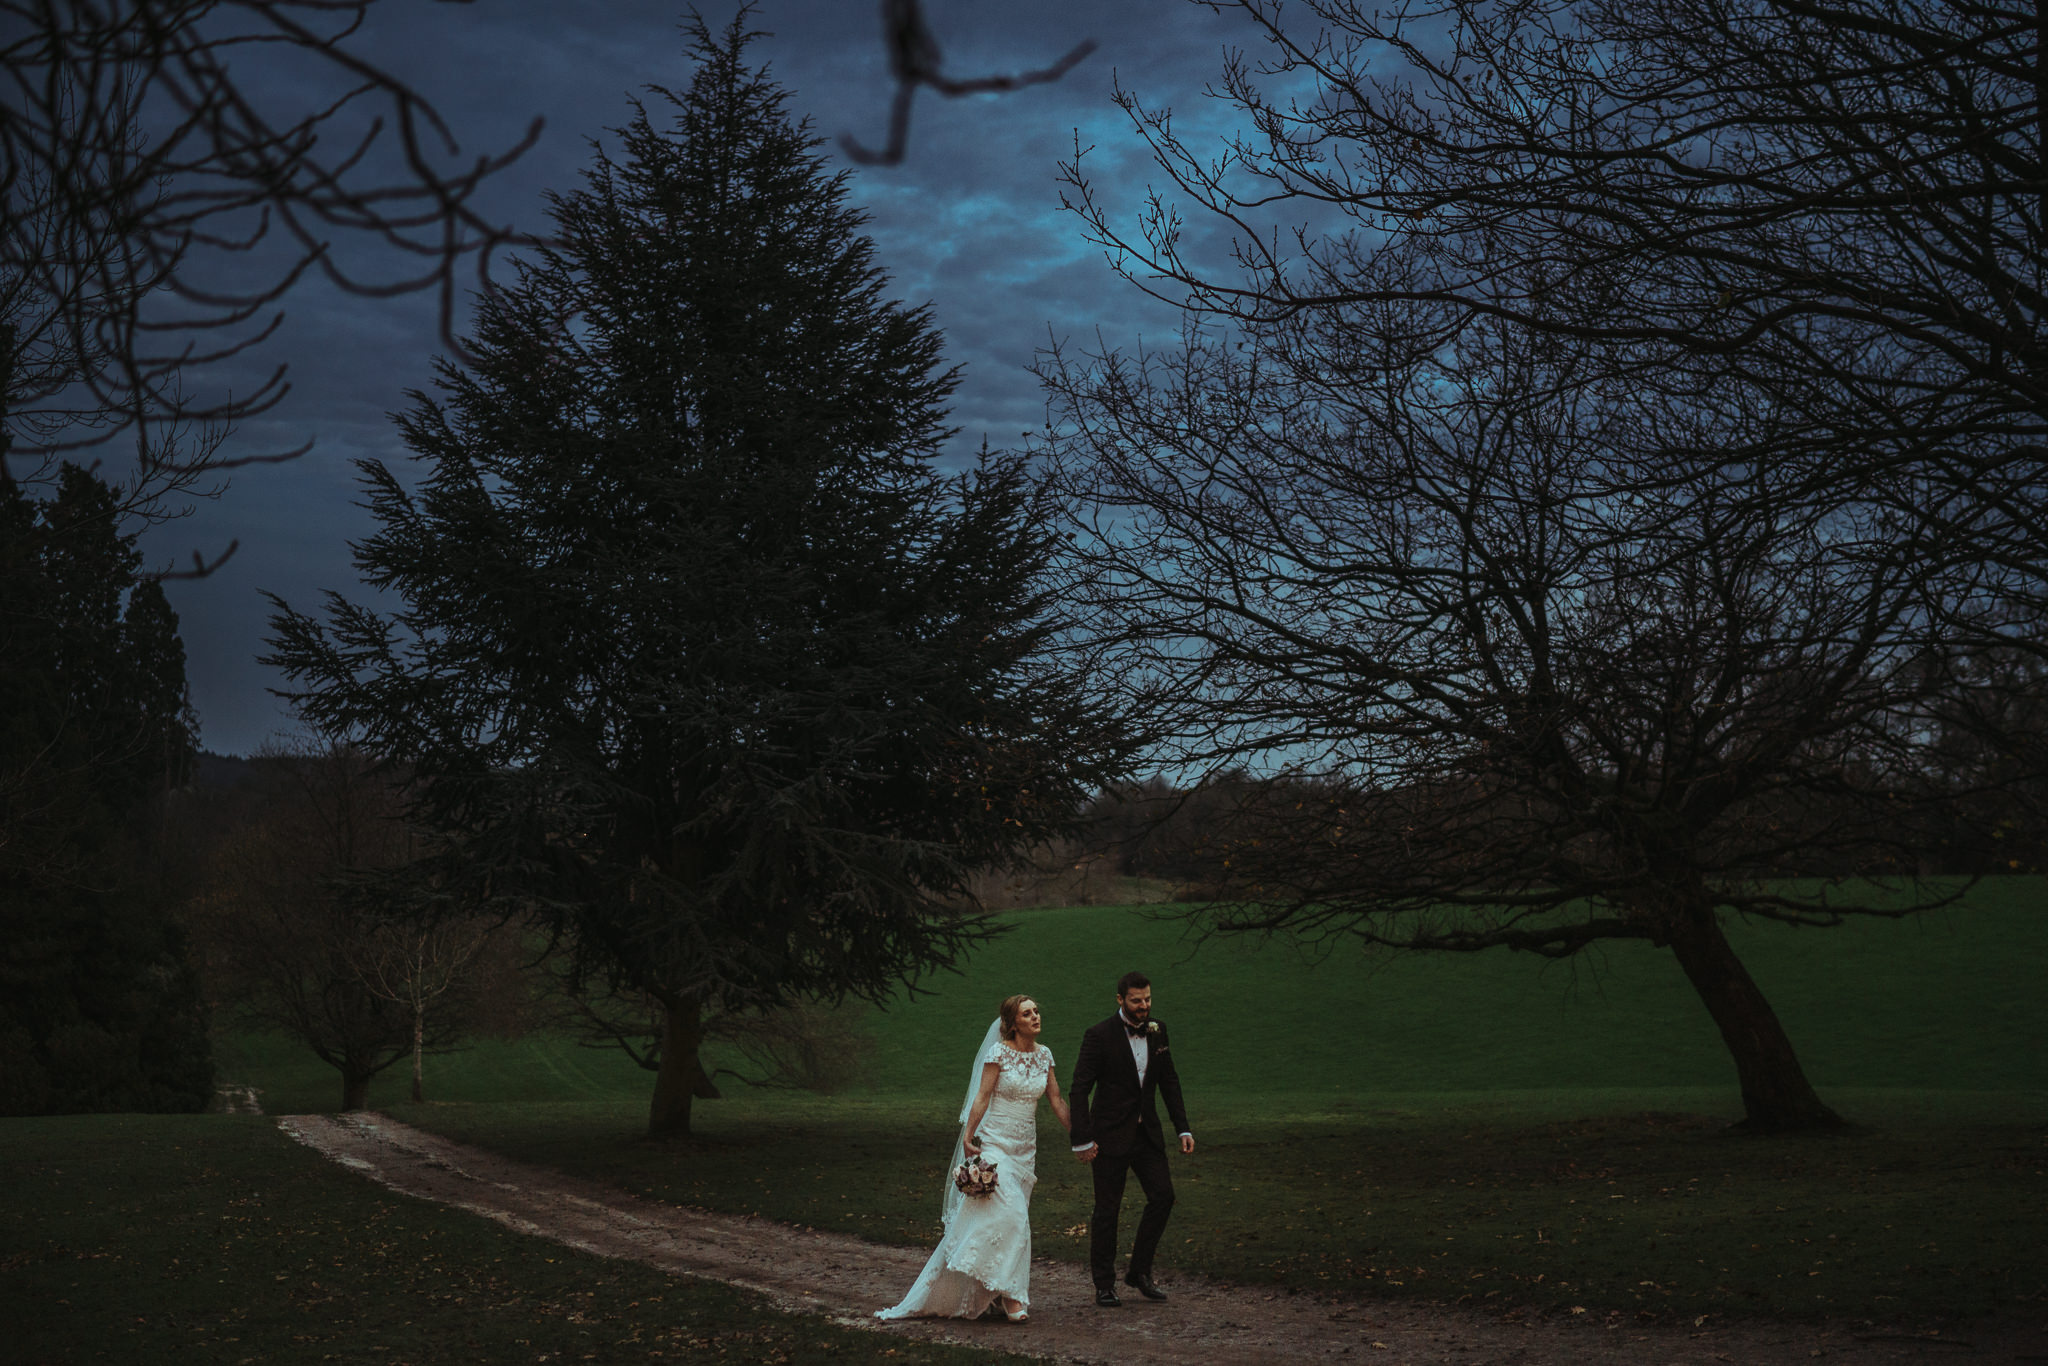 paul-marbrook-best-wedding-photographer-north-wales-148130